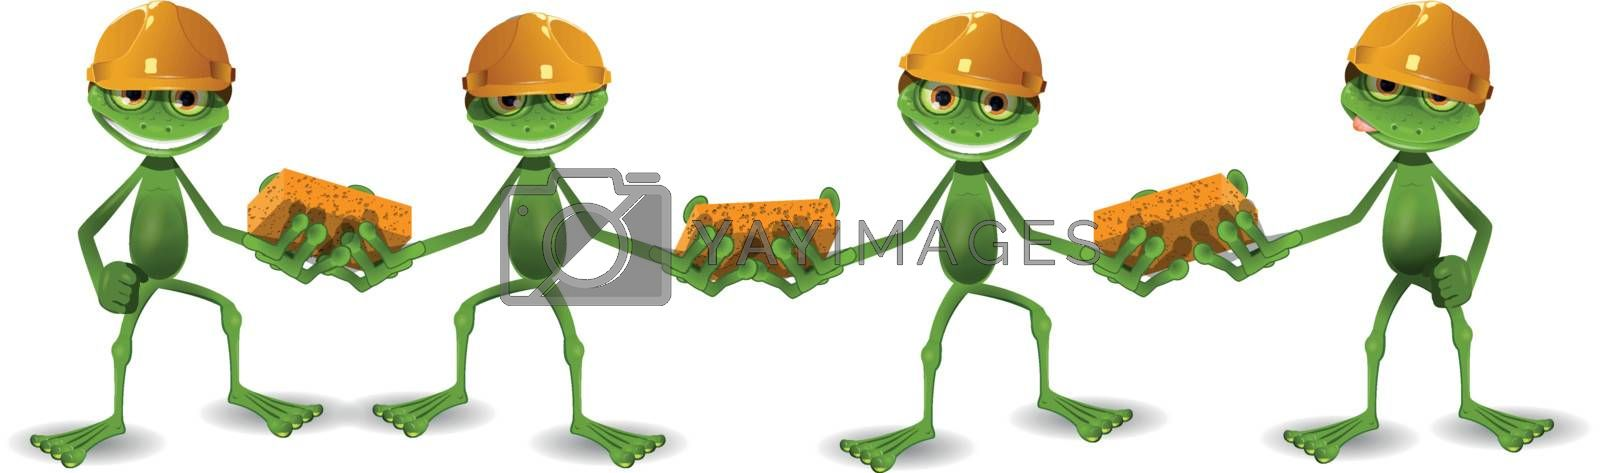 four frogs builder in helmets with bricks